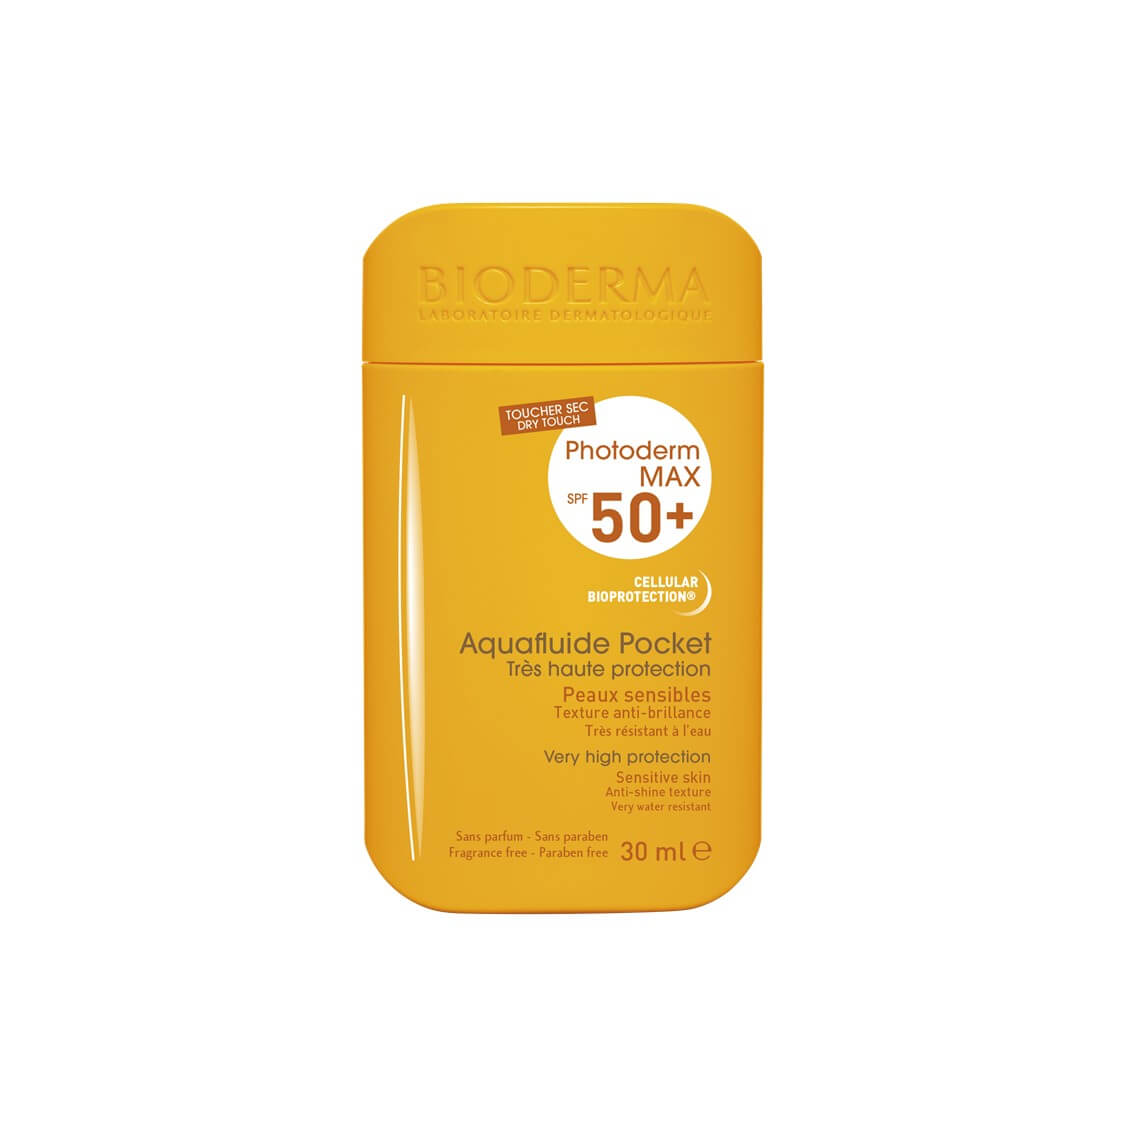 Photoderm Max Pocket Aquafluido Spf50 30 ml